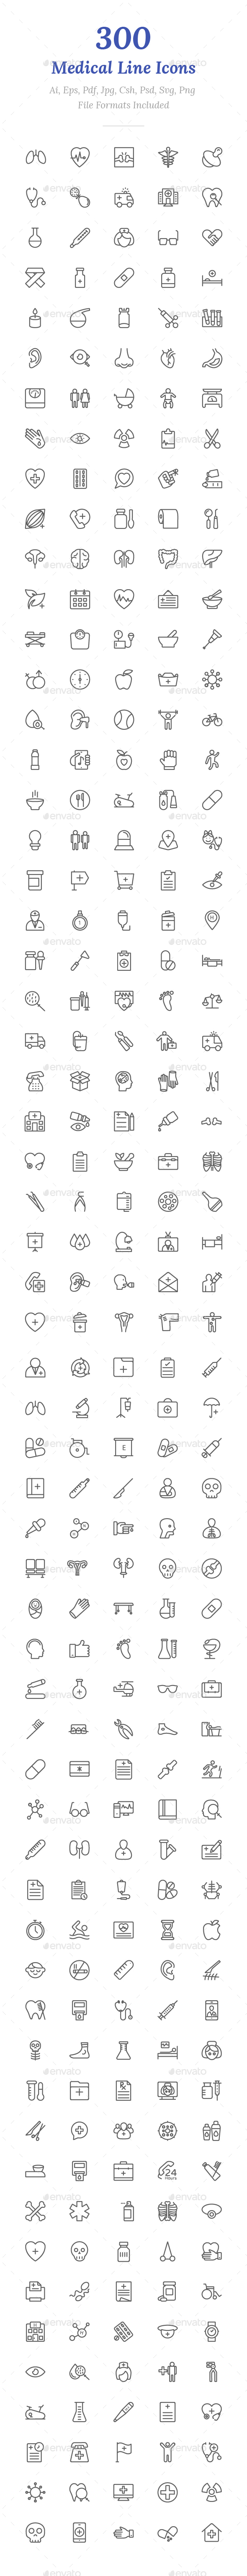 300 Medical Line Icons - Icons